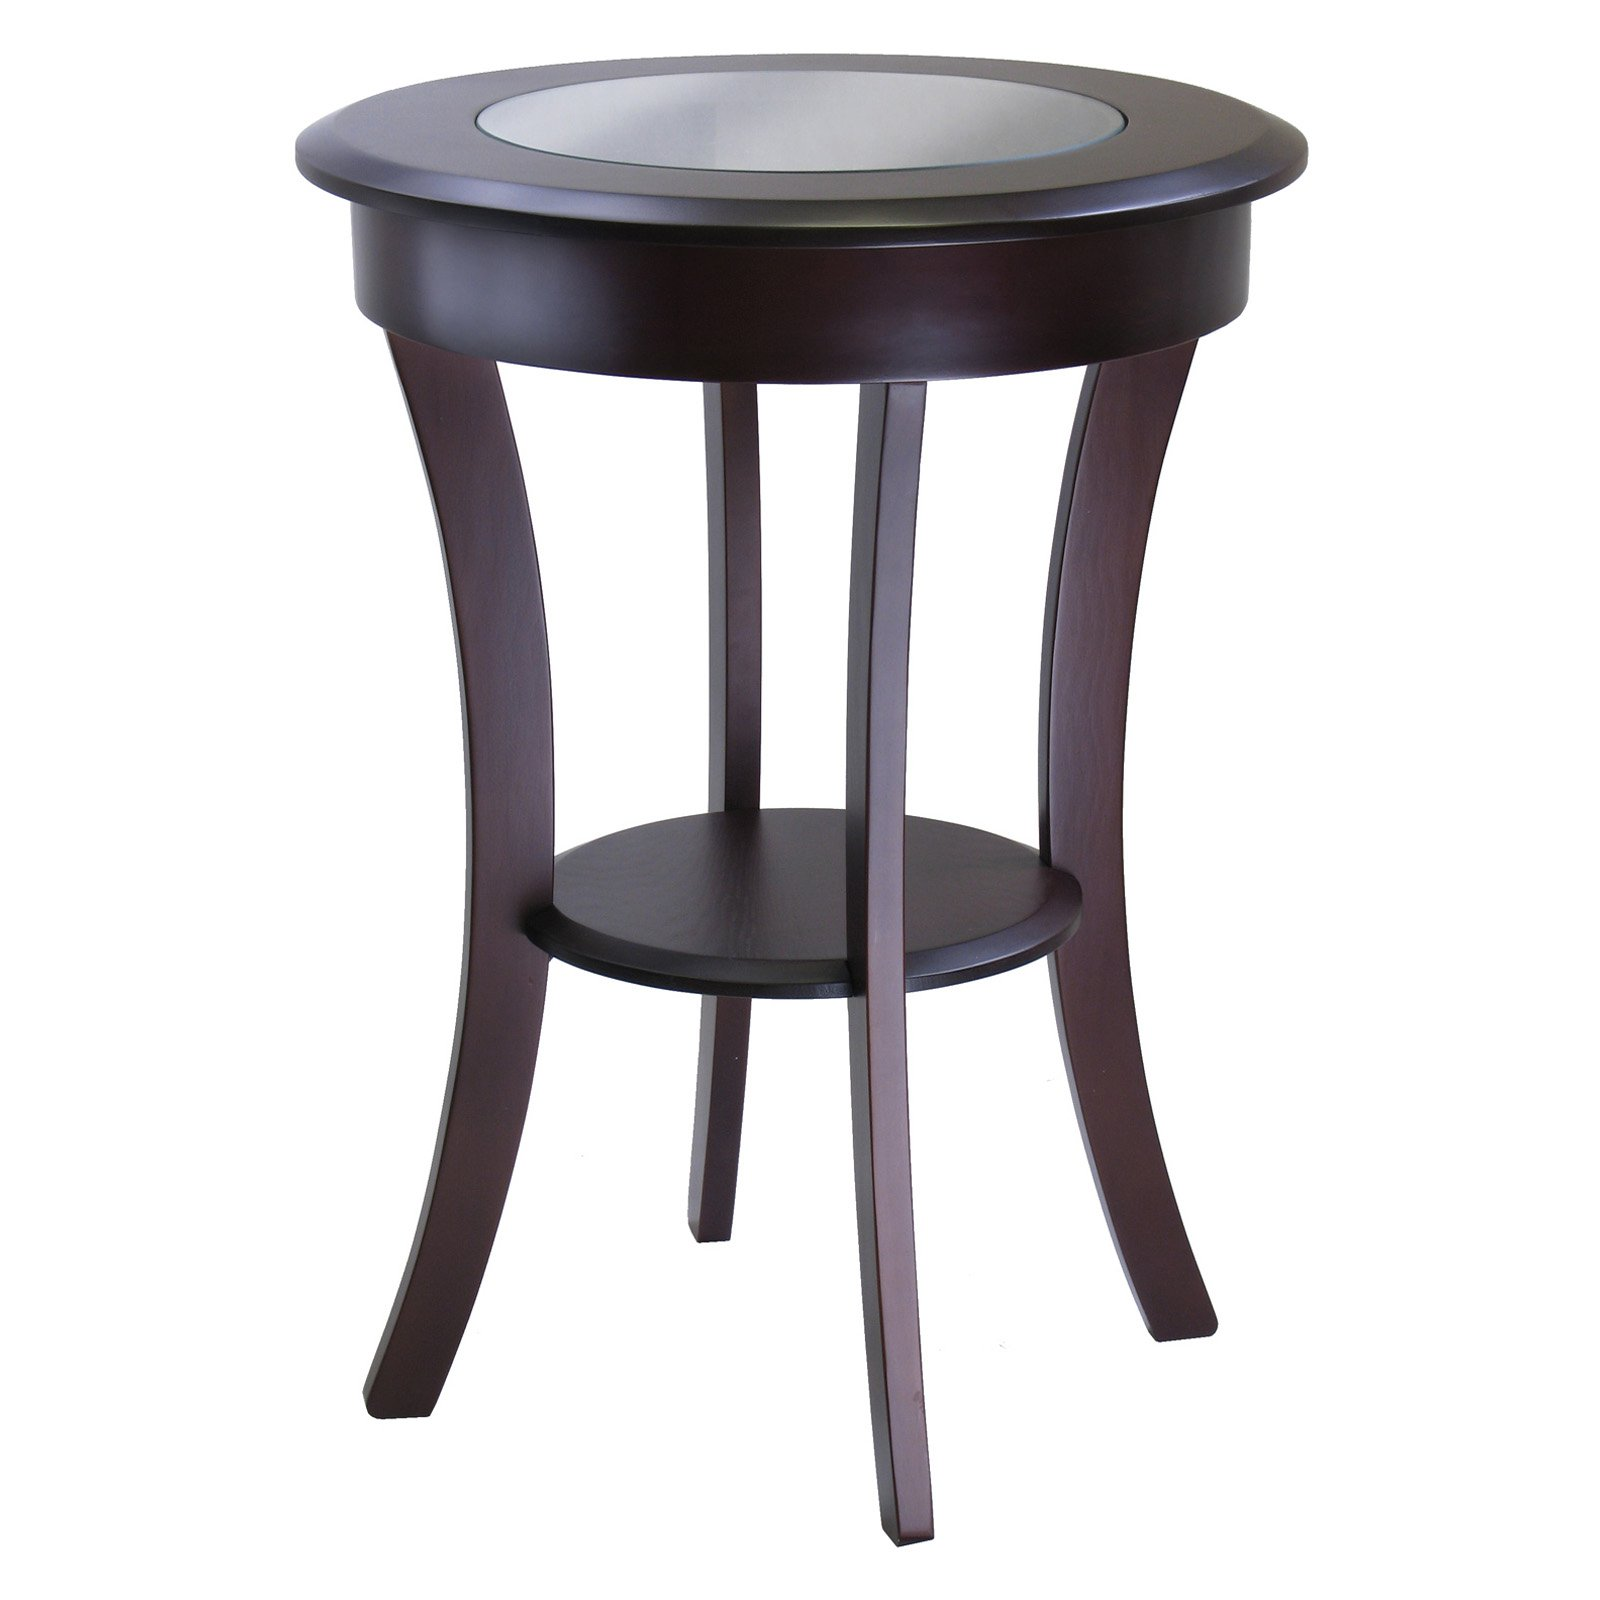 winsome cassie round accent table master brown butler desk furniture easter runner quilt patterns modern wood coffee corner nest tables slipper chair small glass shallow cabinet